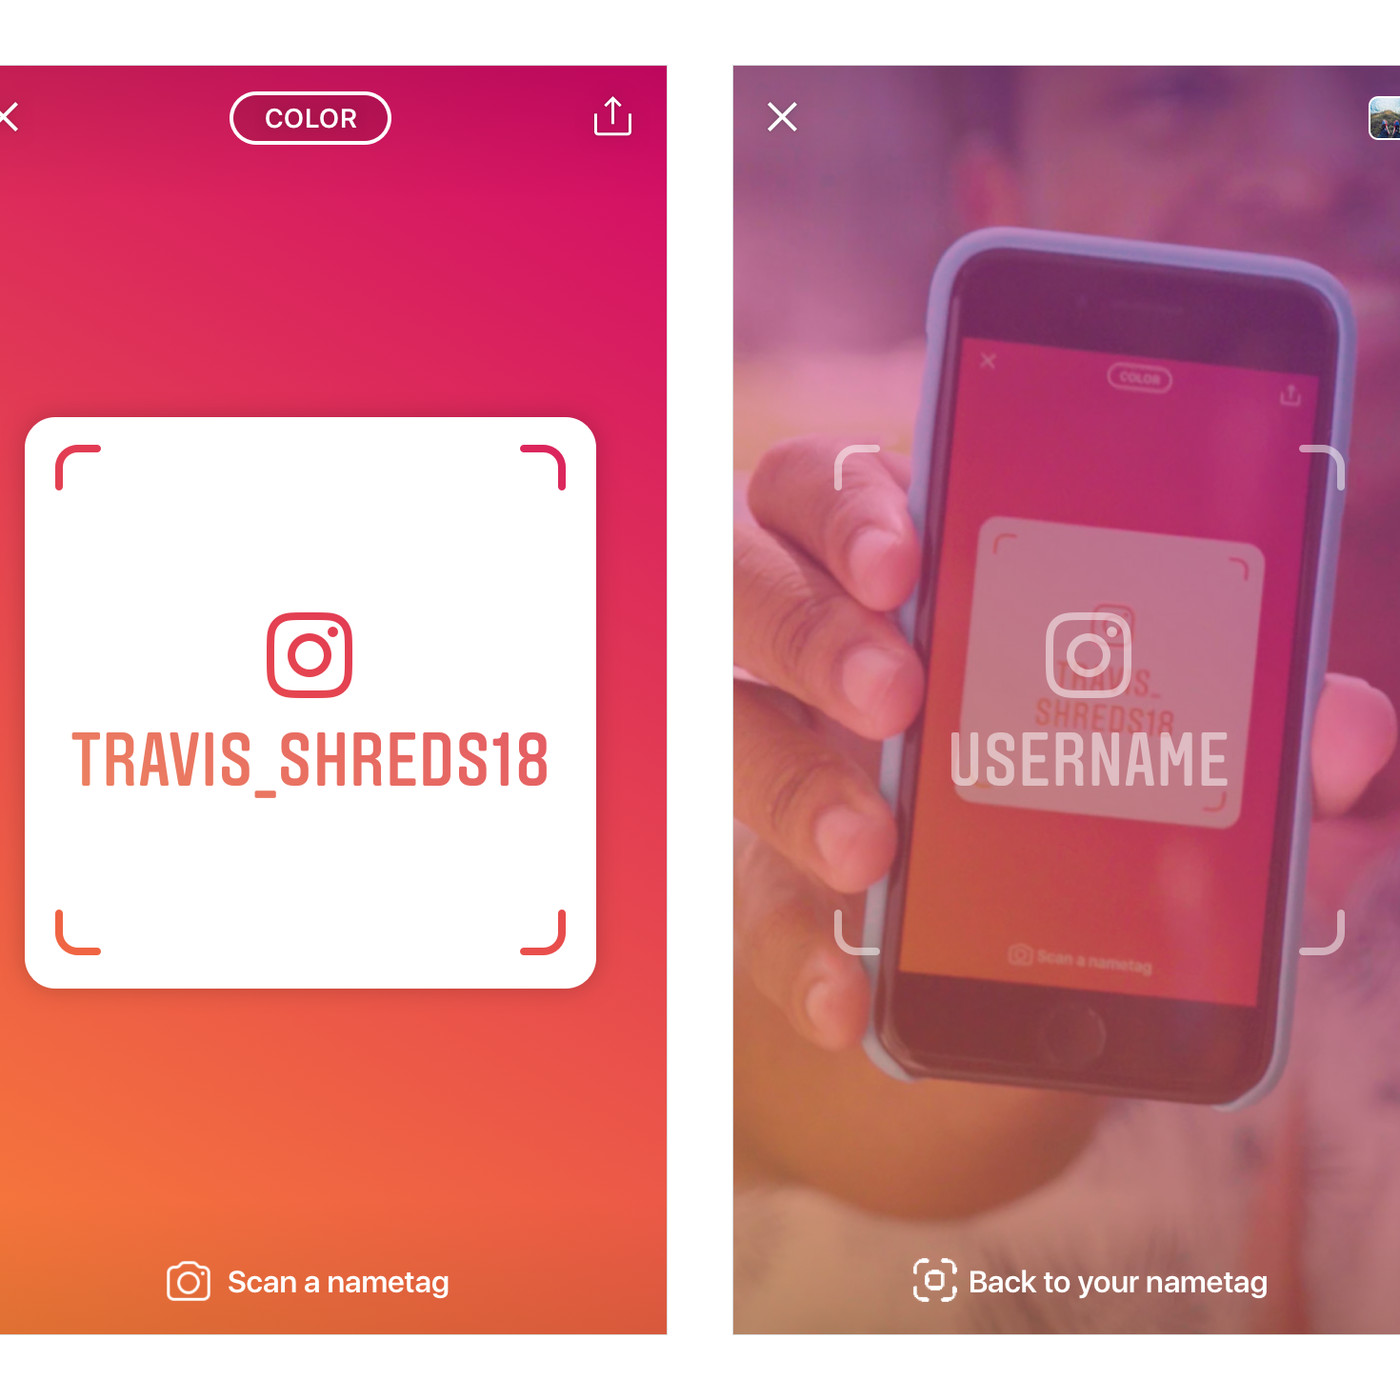 Instagram's Nametag feature makes it easier to follow people